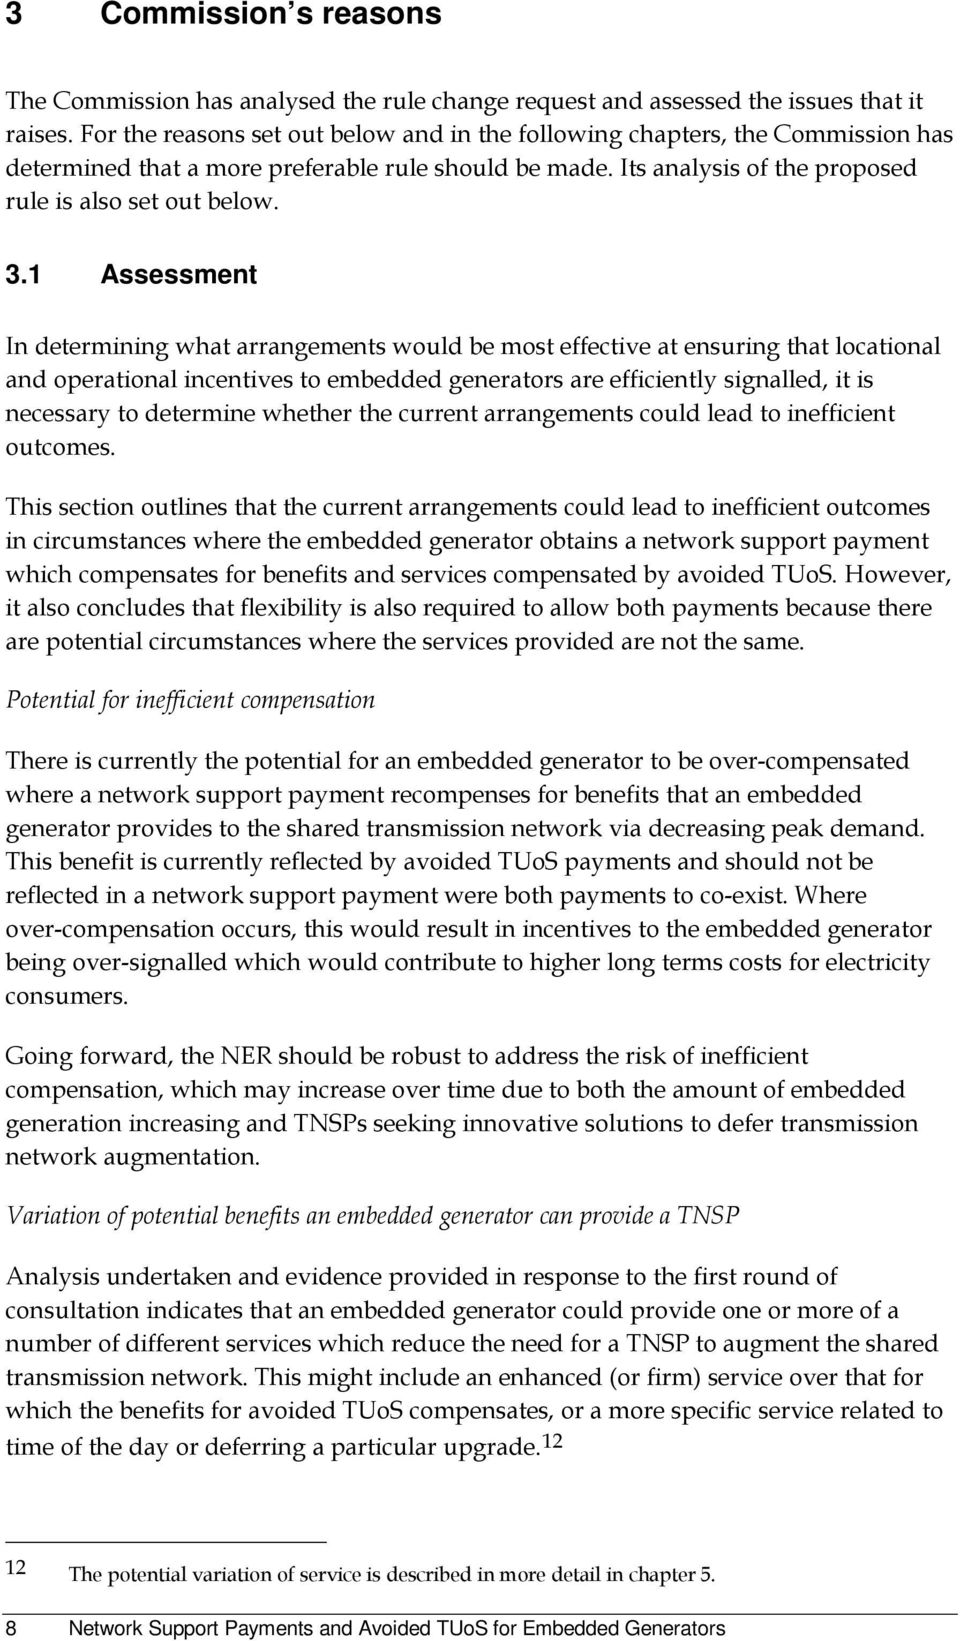 1 Assessment In determining what arrangements would be most effective at ensuring that locational and operational incentives to embedded generators are efficiently signalled, it is necessary to